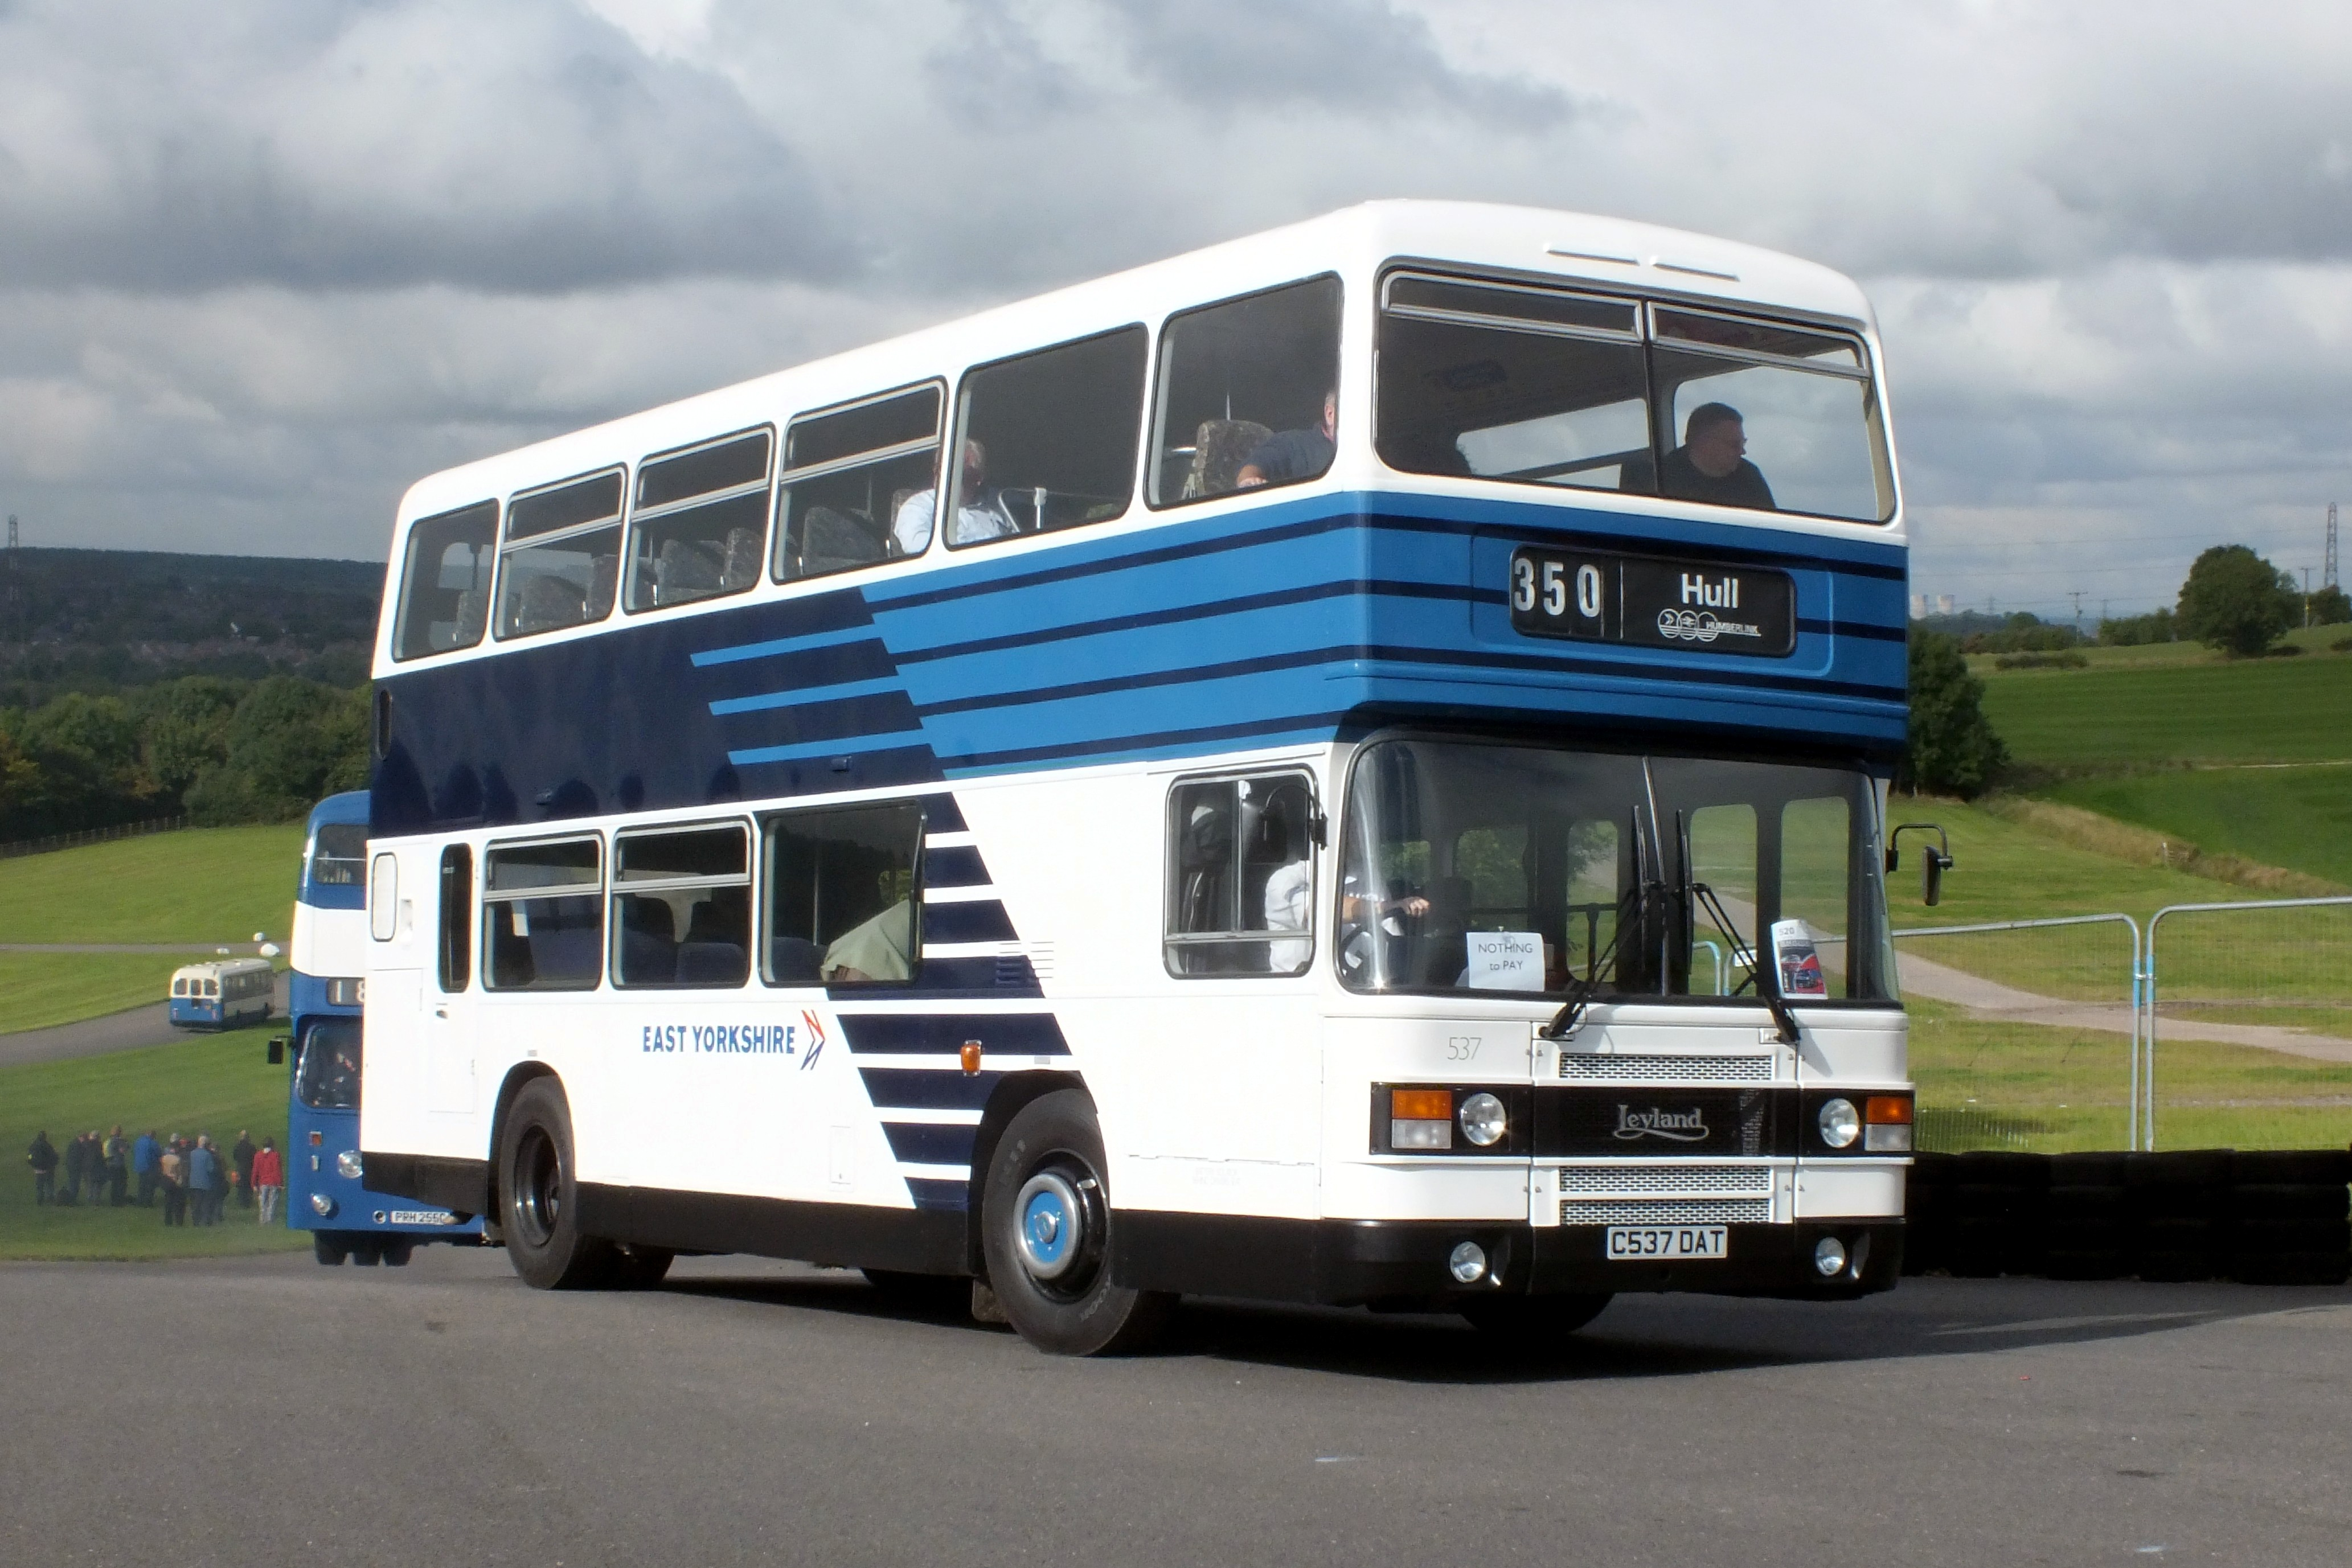 17 September 2017 Showbus, Donington. 407.jpg